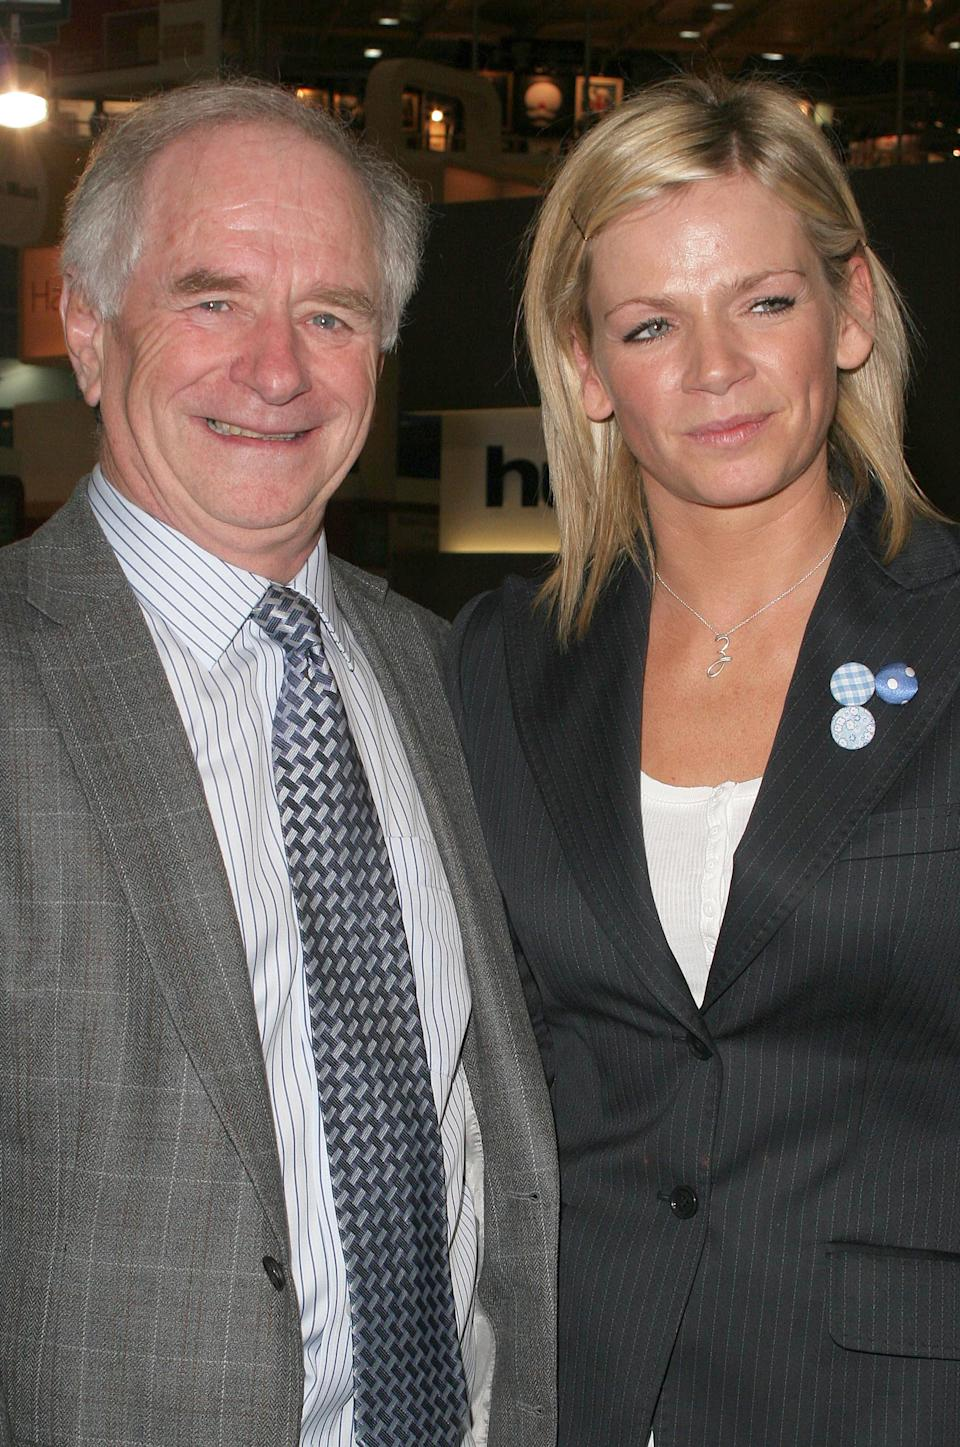 Johnny Ball and Zoe Ball during Daily Mail Ideal Home Show 2006 - Photocall at Earls Court in London, Great Britain. (Photo by Fred Duval/FilmMagic)